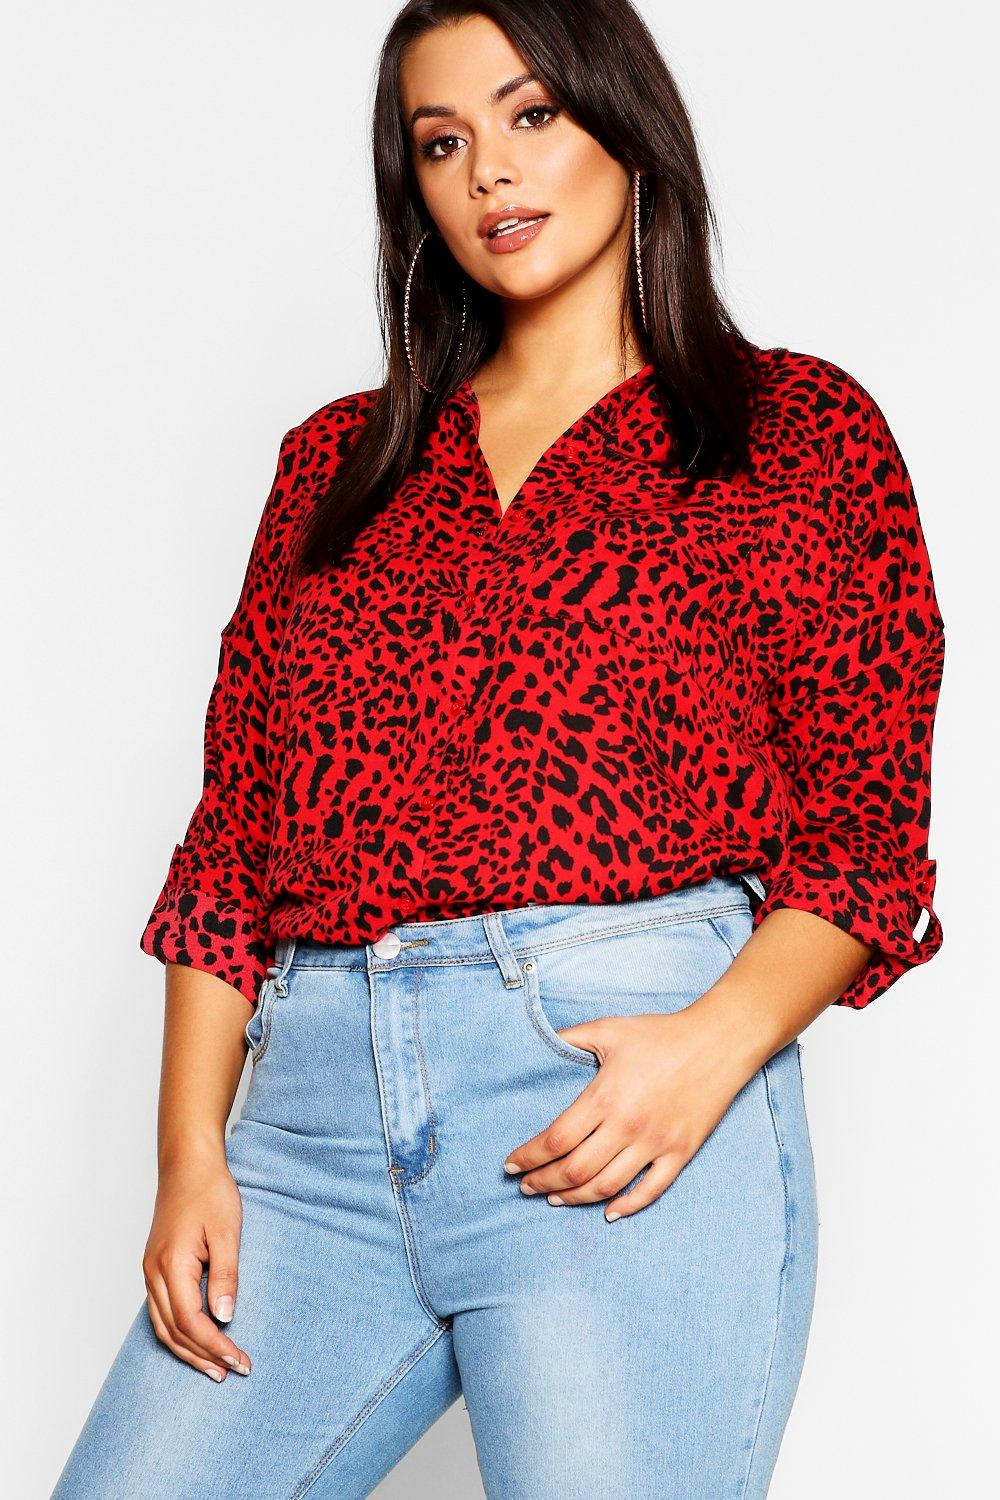 Womens Plus Rotes Oversized Hemd in Leopardenmuster - 42, Rot - Boohoo.com